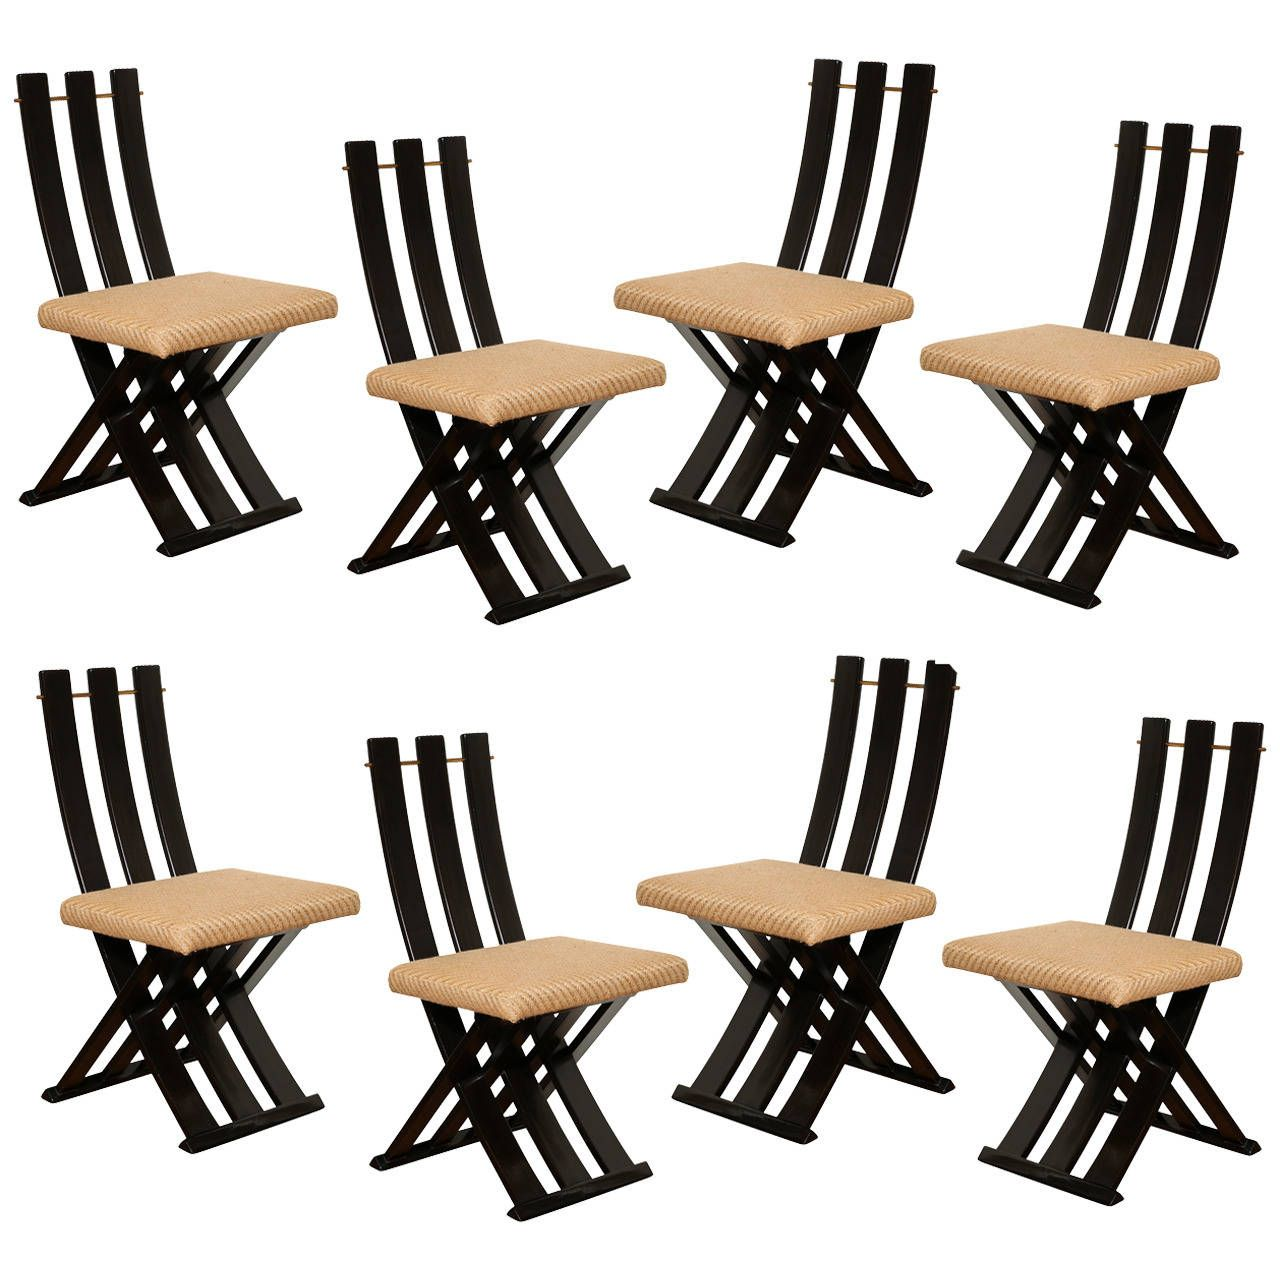 A Set of Eight MidCentury Modern Scissor Chairs by Harvey